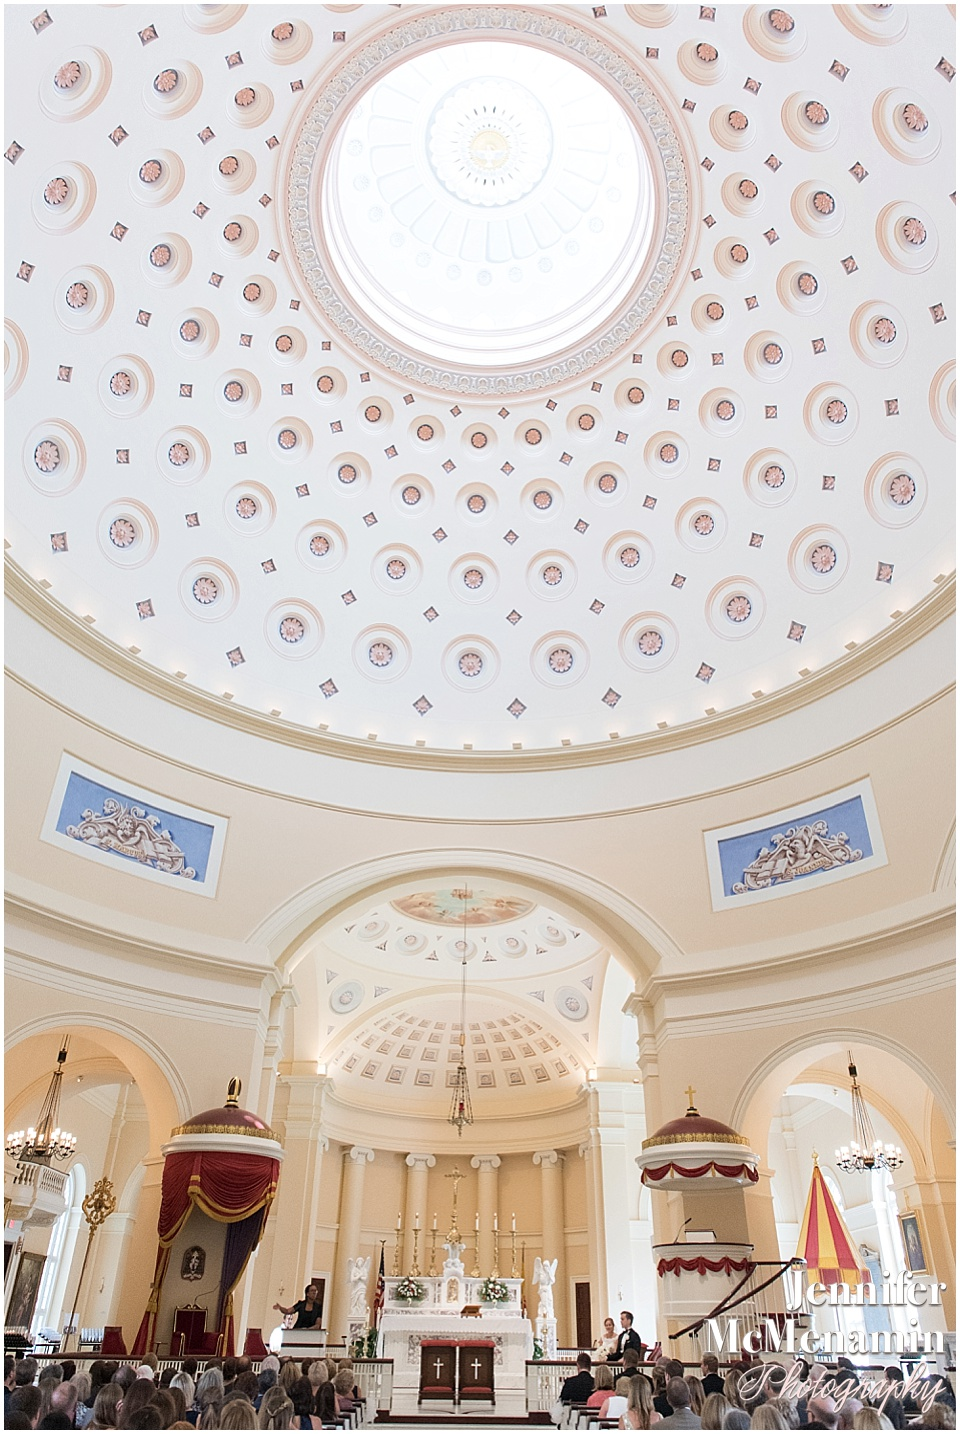 033_Jennifer-McMenamin-Photography-Baltimore-Basilica-Evergreen-Museum-And-Carriage-House_0032